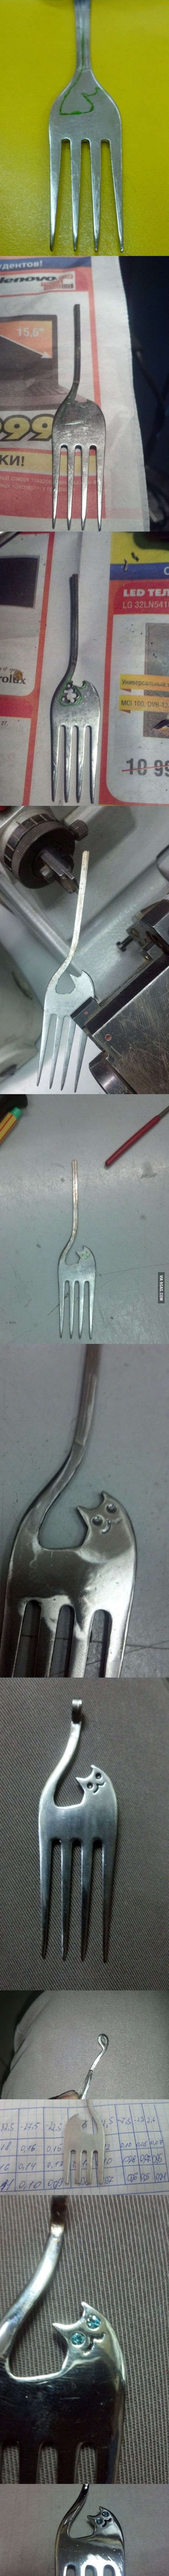 Please don't show this to my wife. I'd like to keep at least one fork in my house. (9gag)